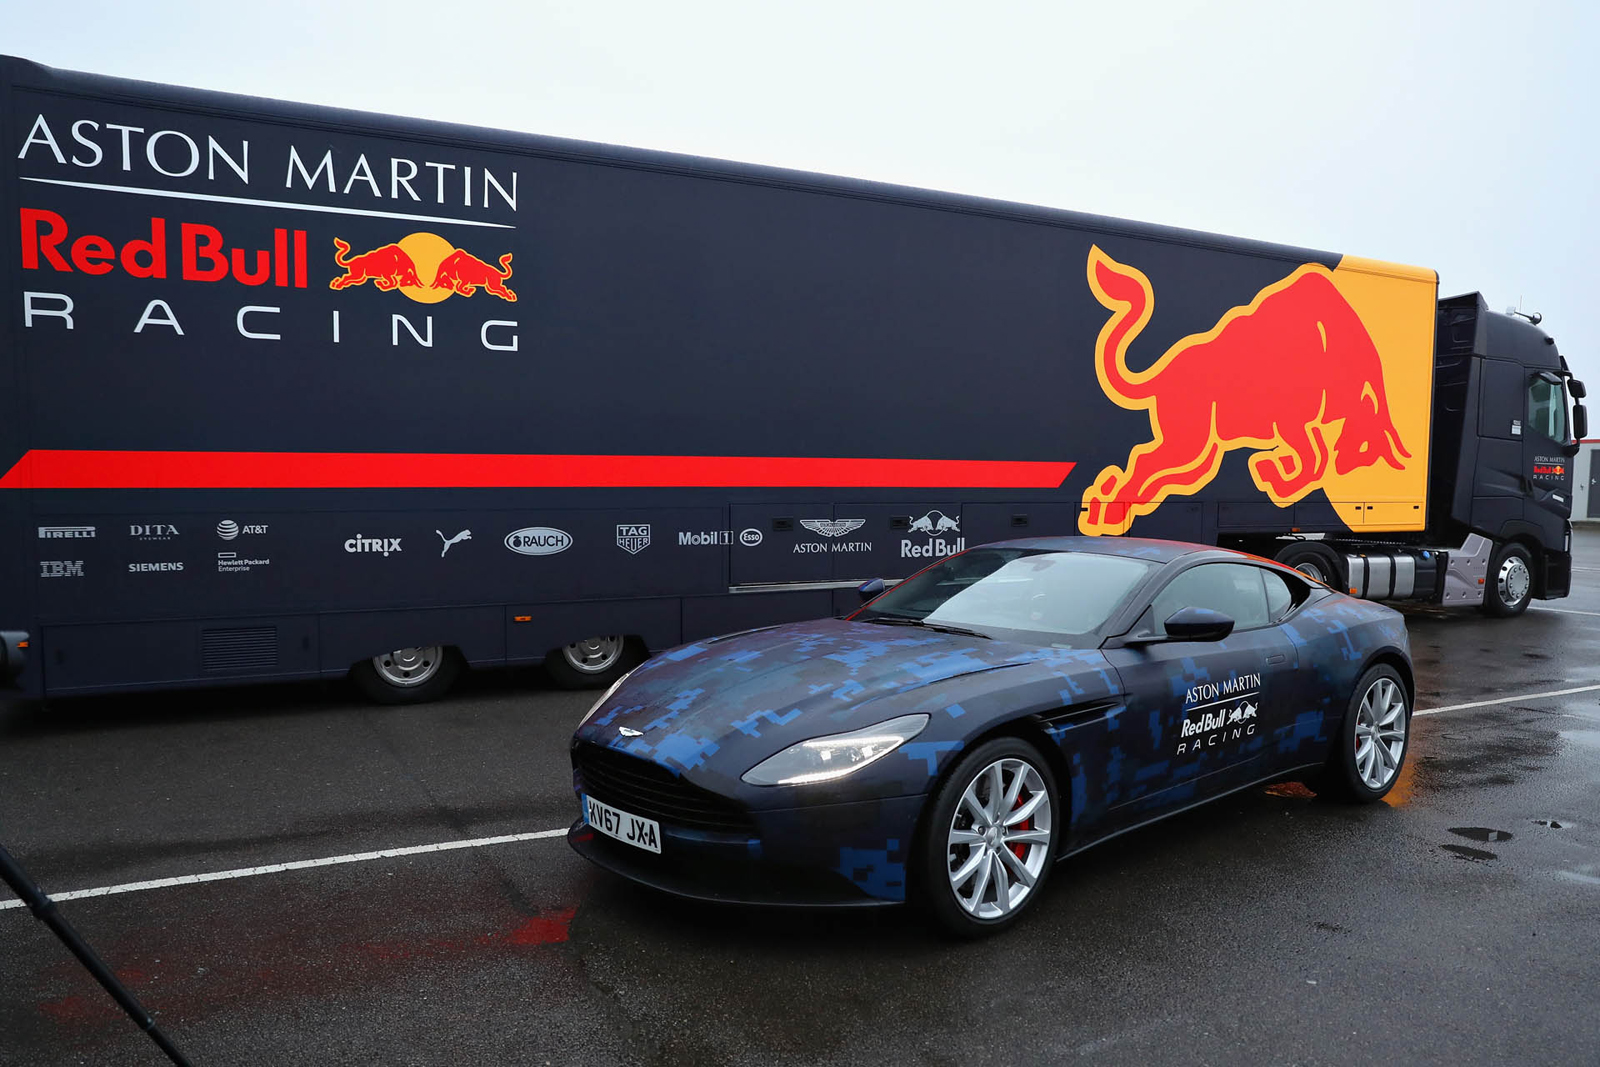 Aston Martin Db11 Looks Even Better In Red Bull Test Scheme Autoguide Com News